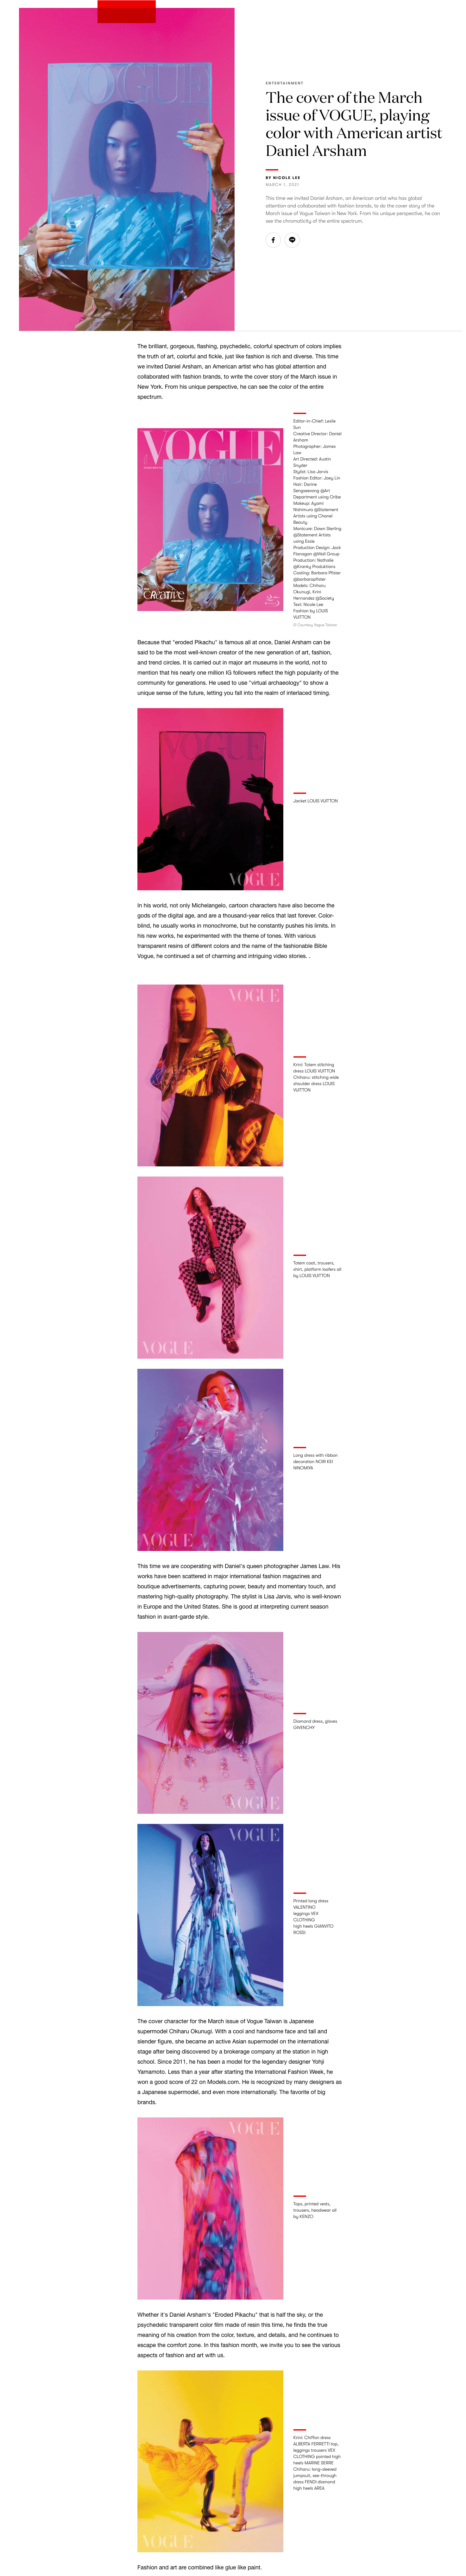 Vogue Taiwan press clipping featuring several images with pink, blue and yellow hued filters and couture outfits